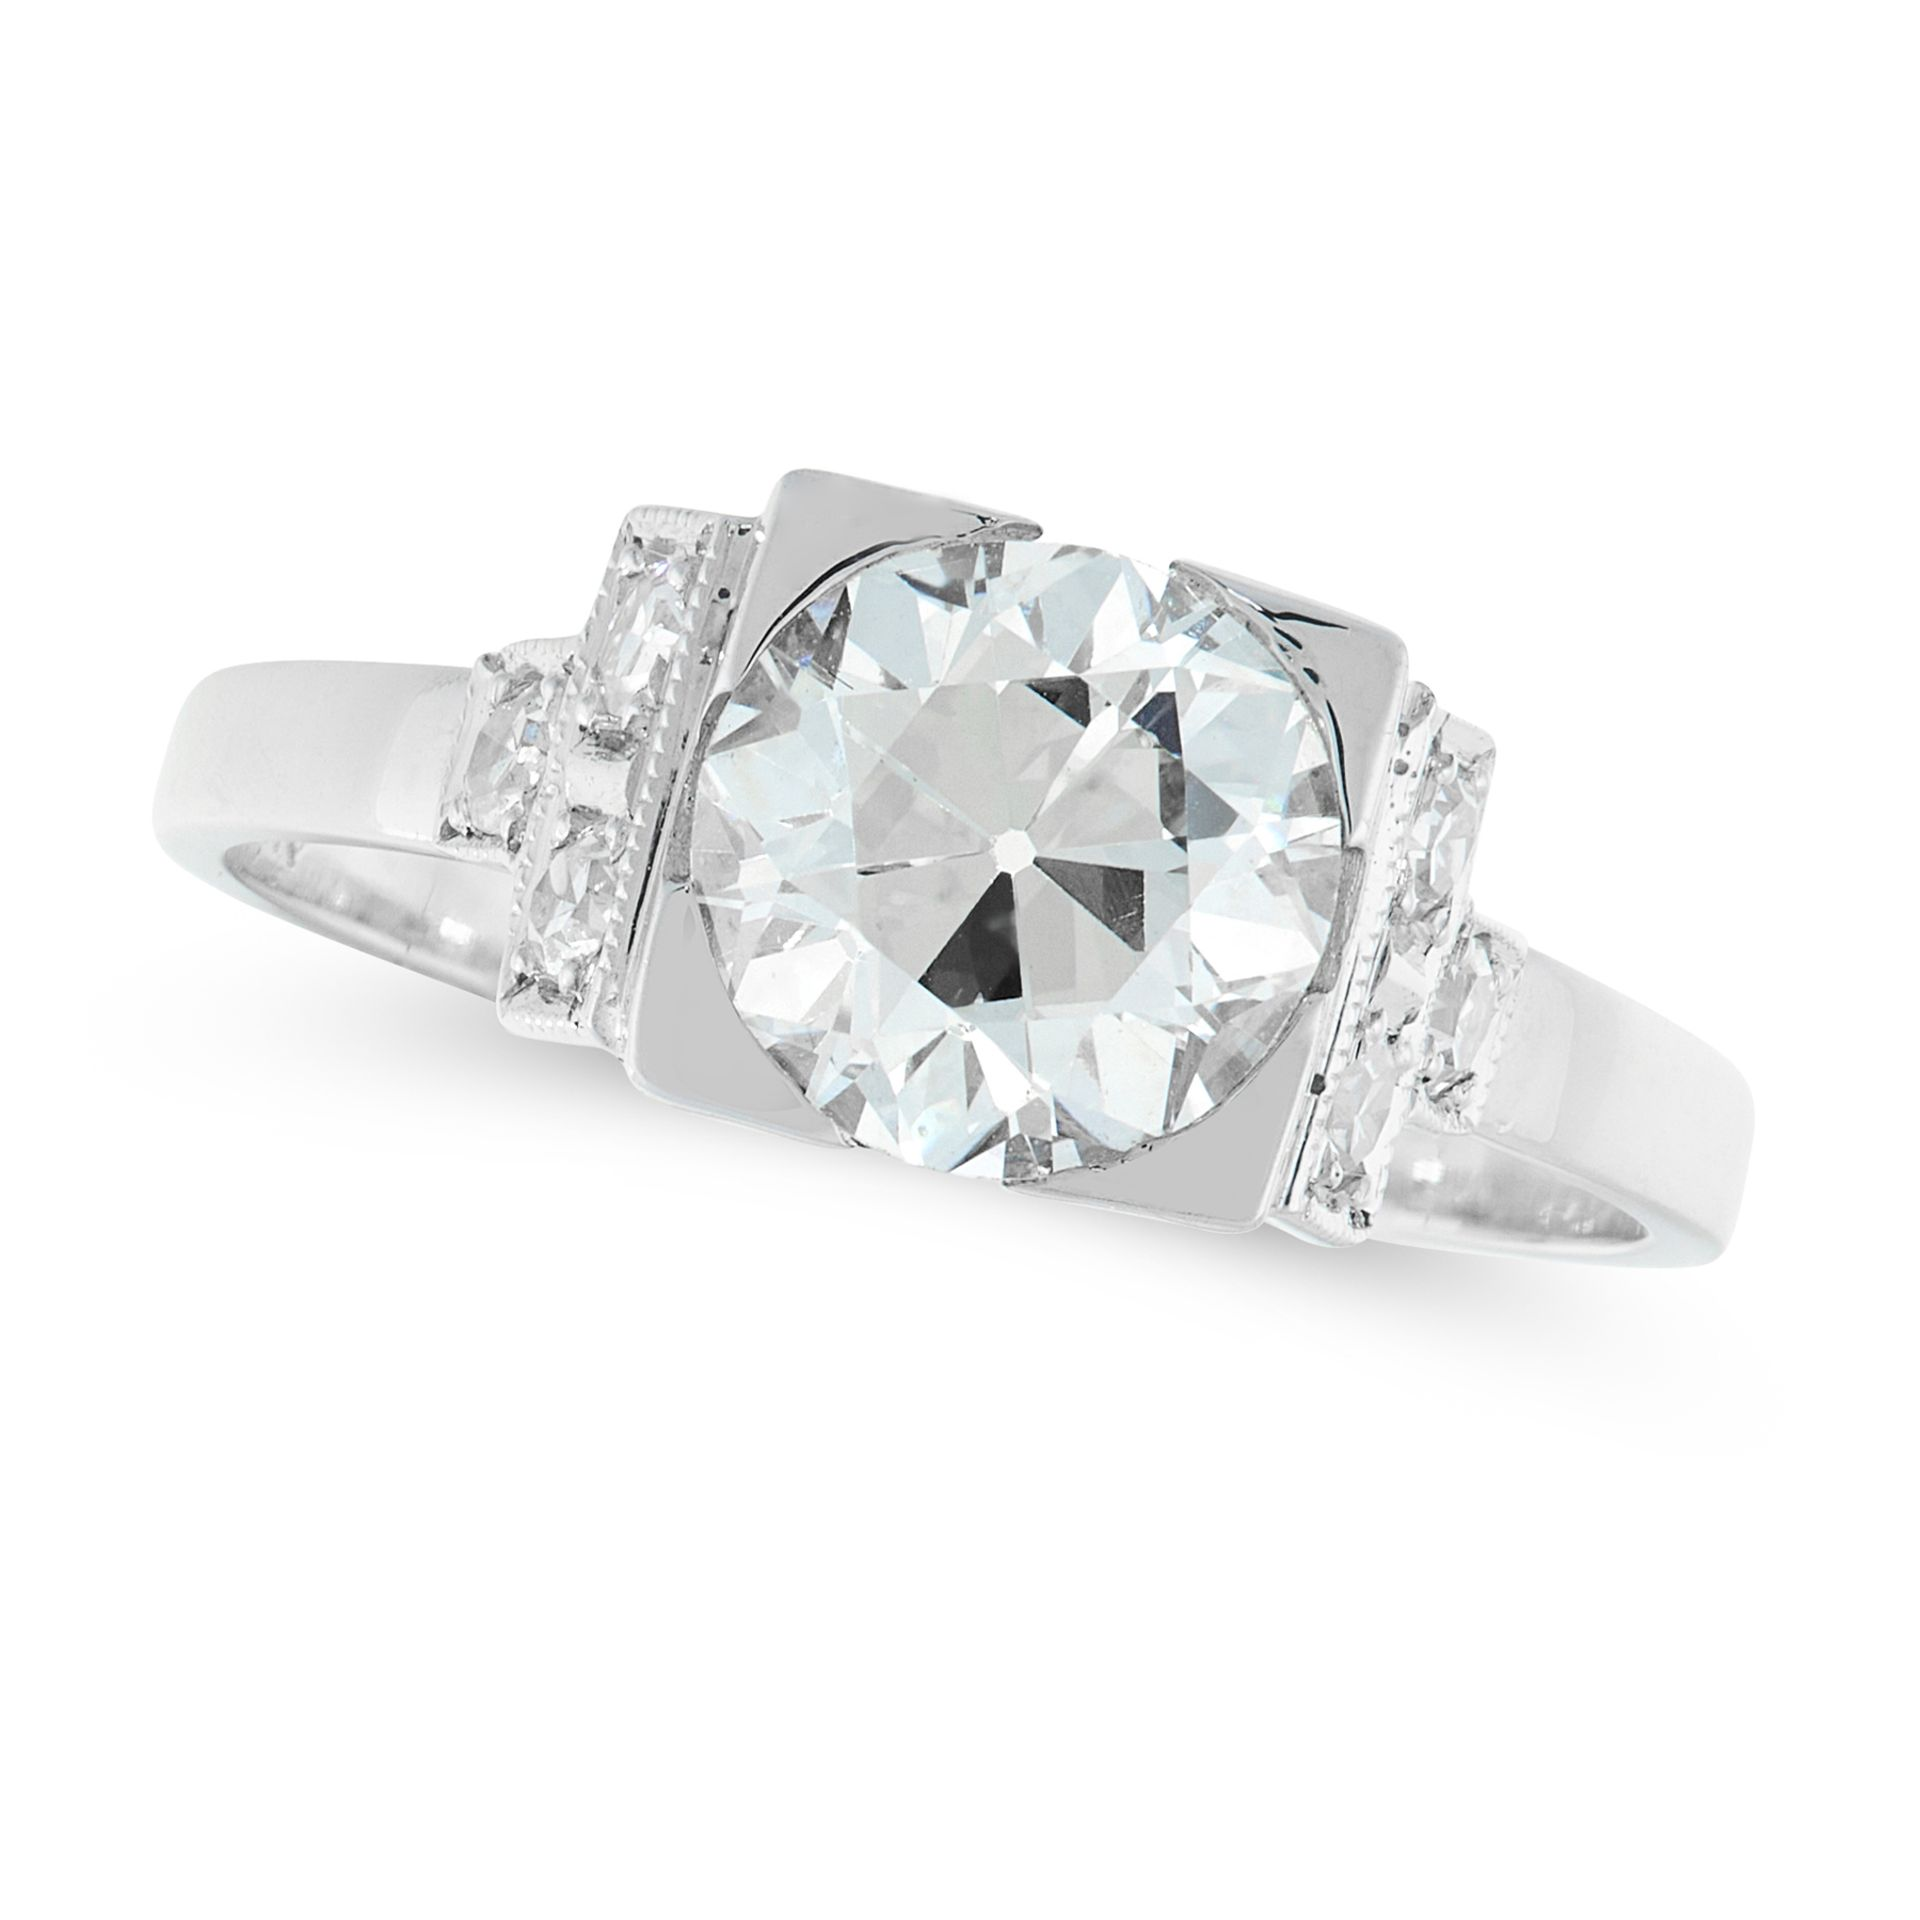 A SOLITIARE DIAMOND RING in white gold, set with a principal old cut diamond of 1.68 carats, between